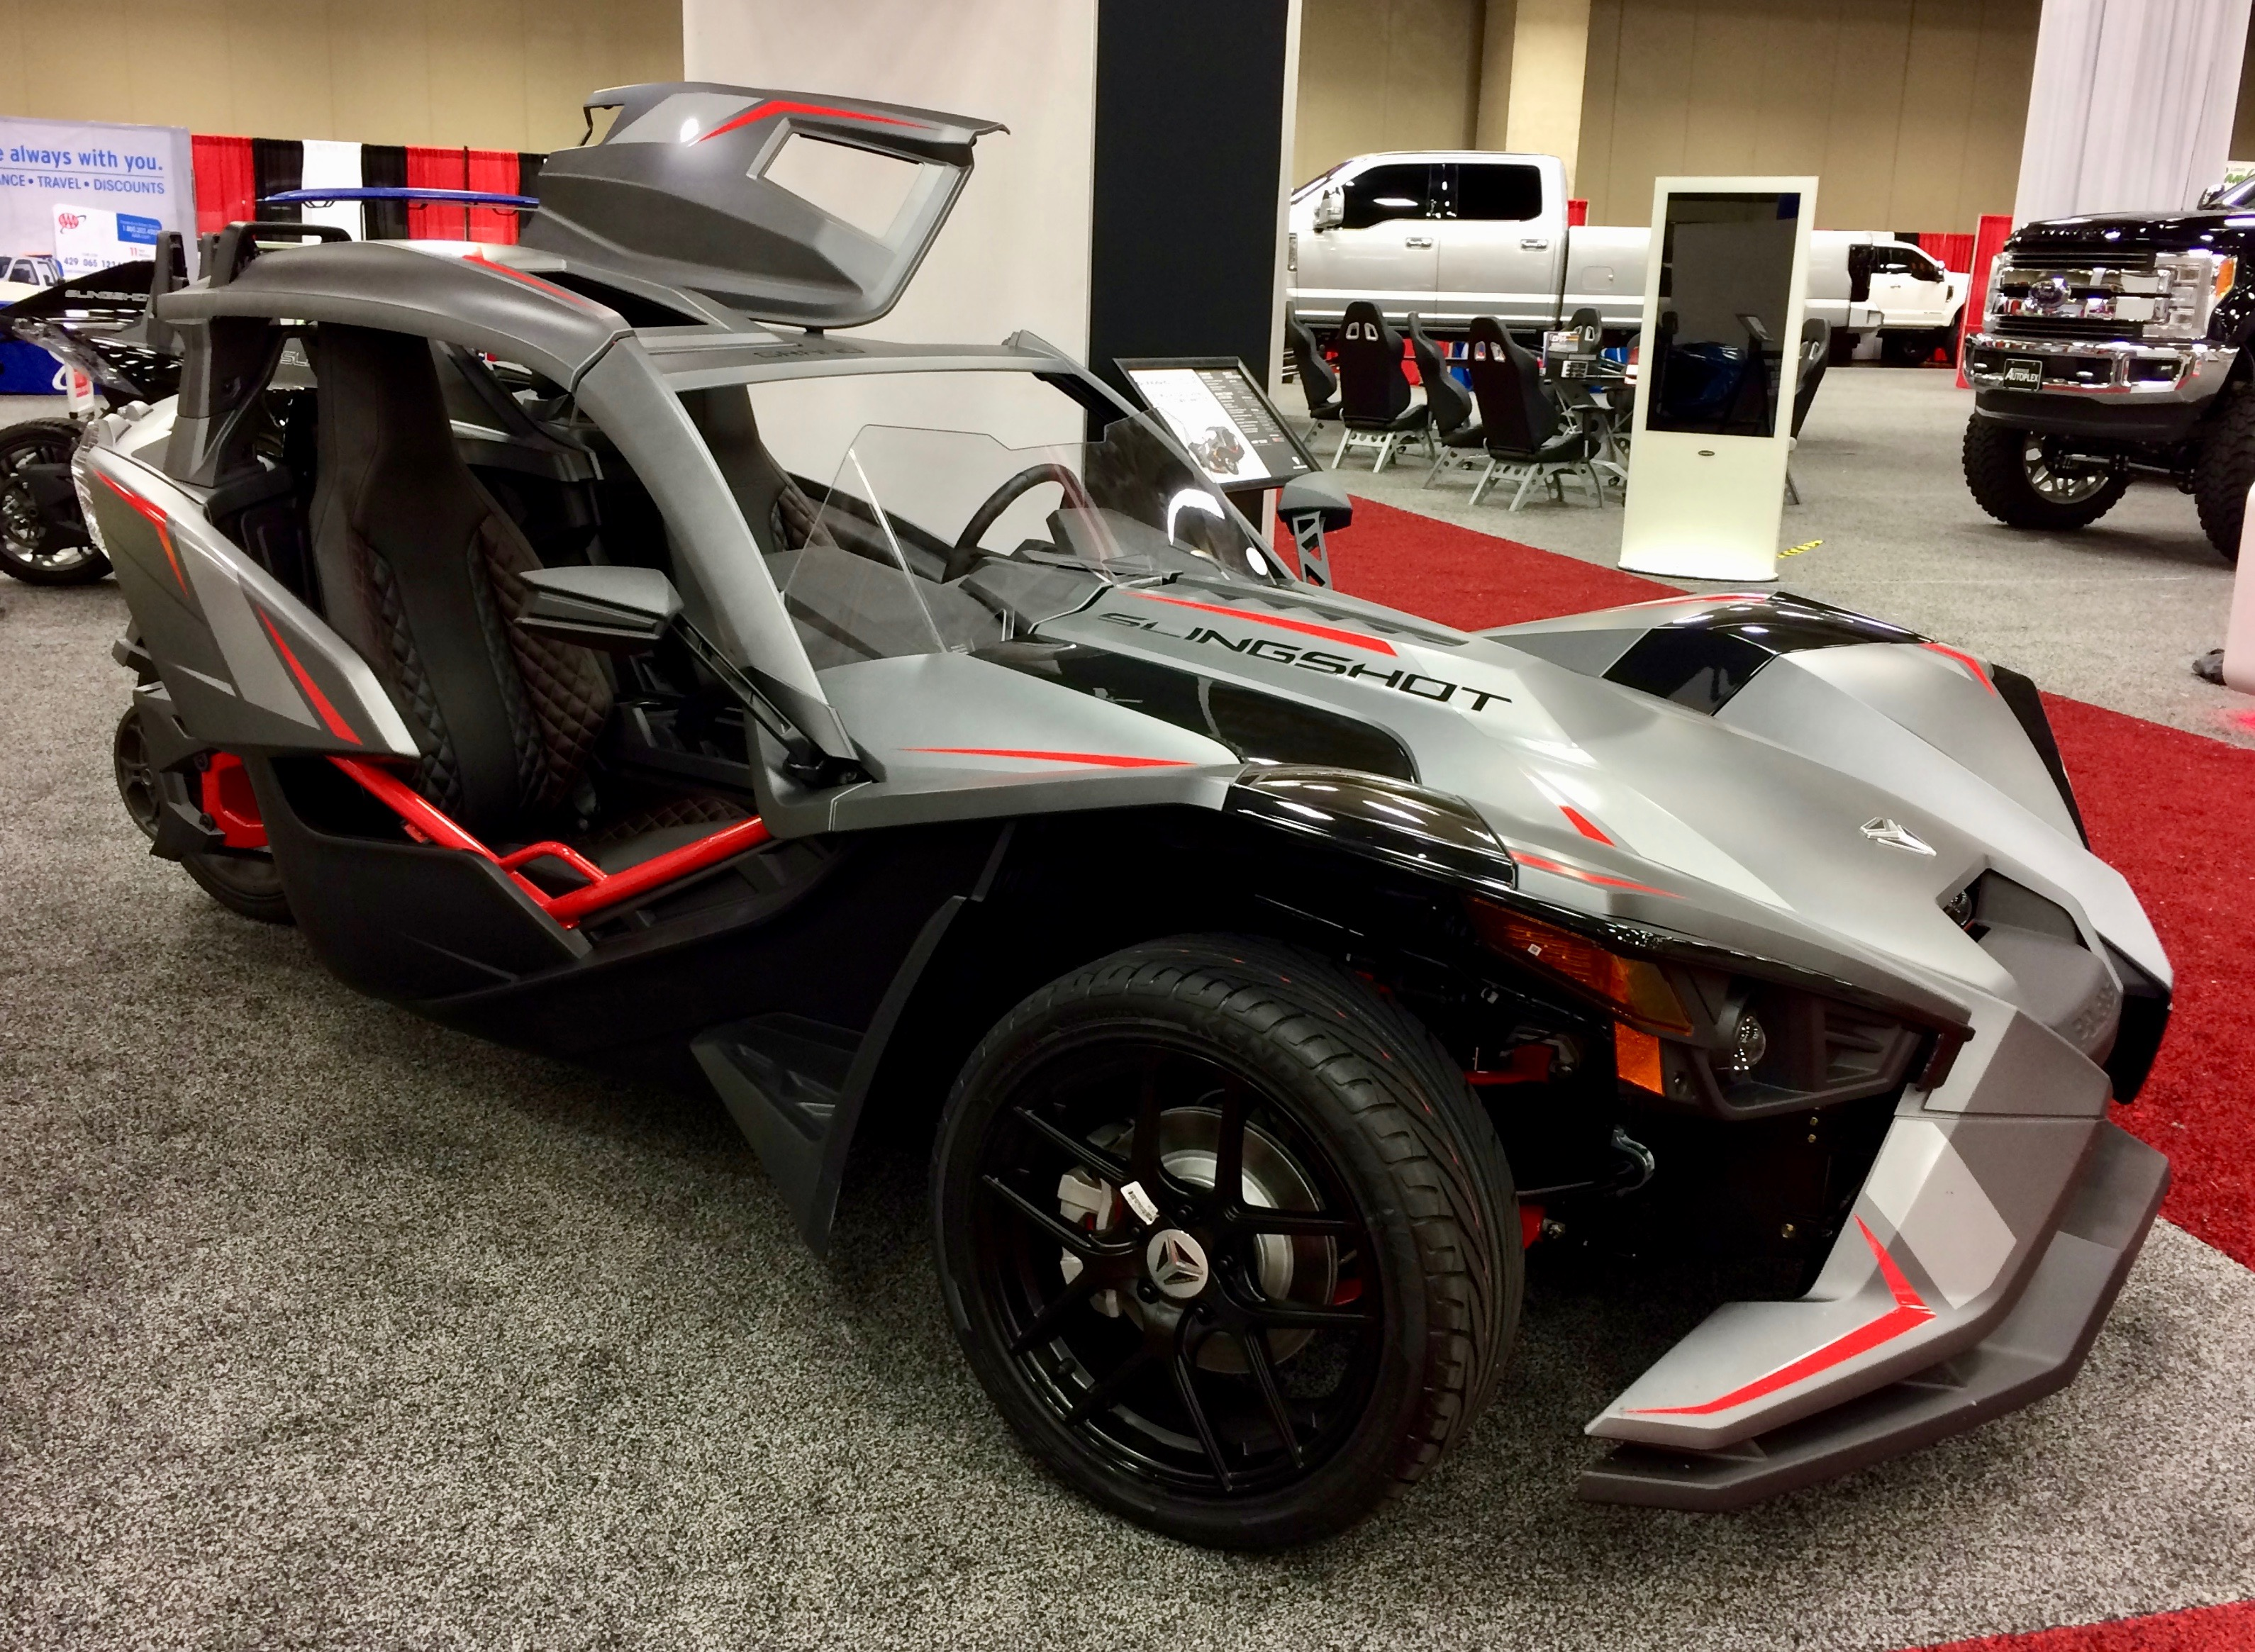 5 Must-see cars at the DFW Auto Show | RoadLoans